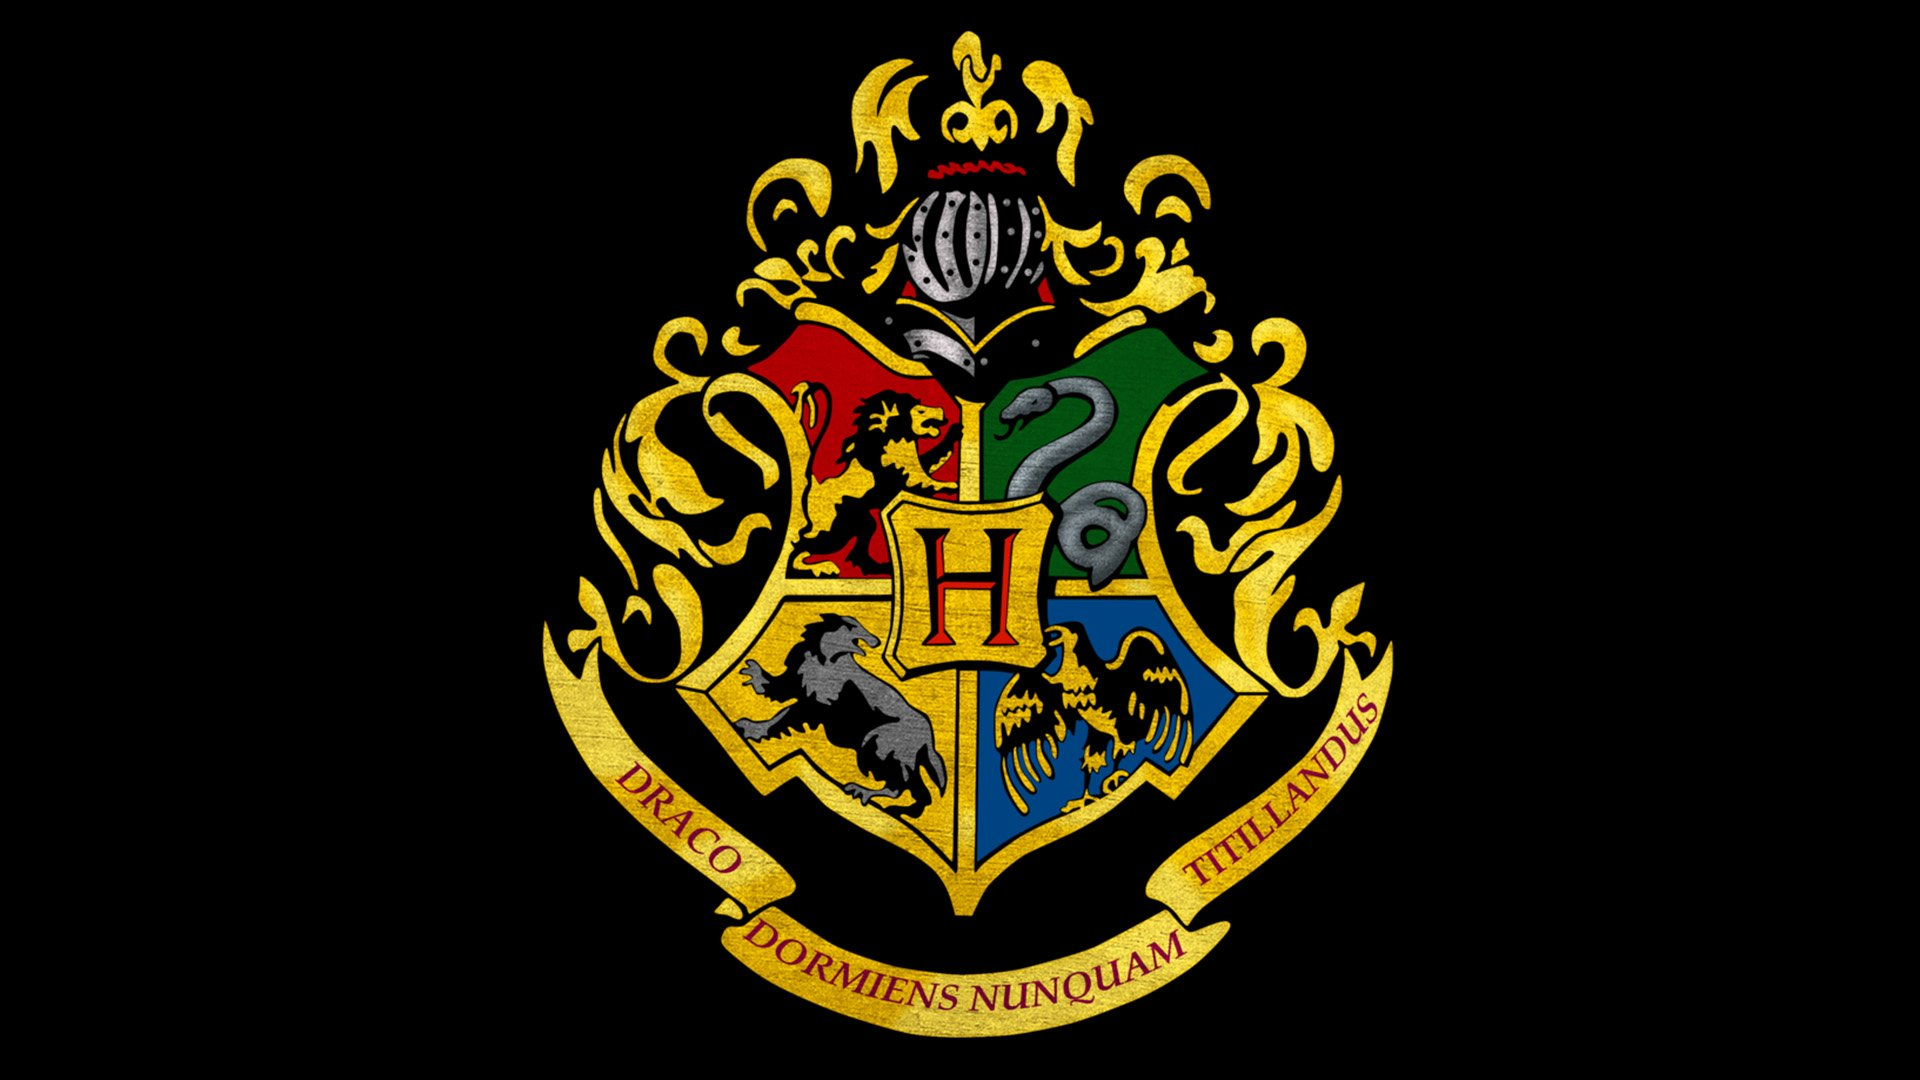 Hogwarts logo and symbol, meaning, history, PNG